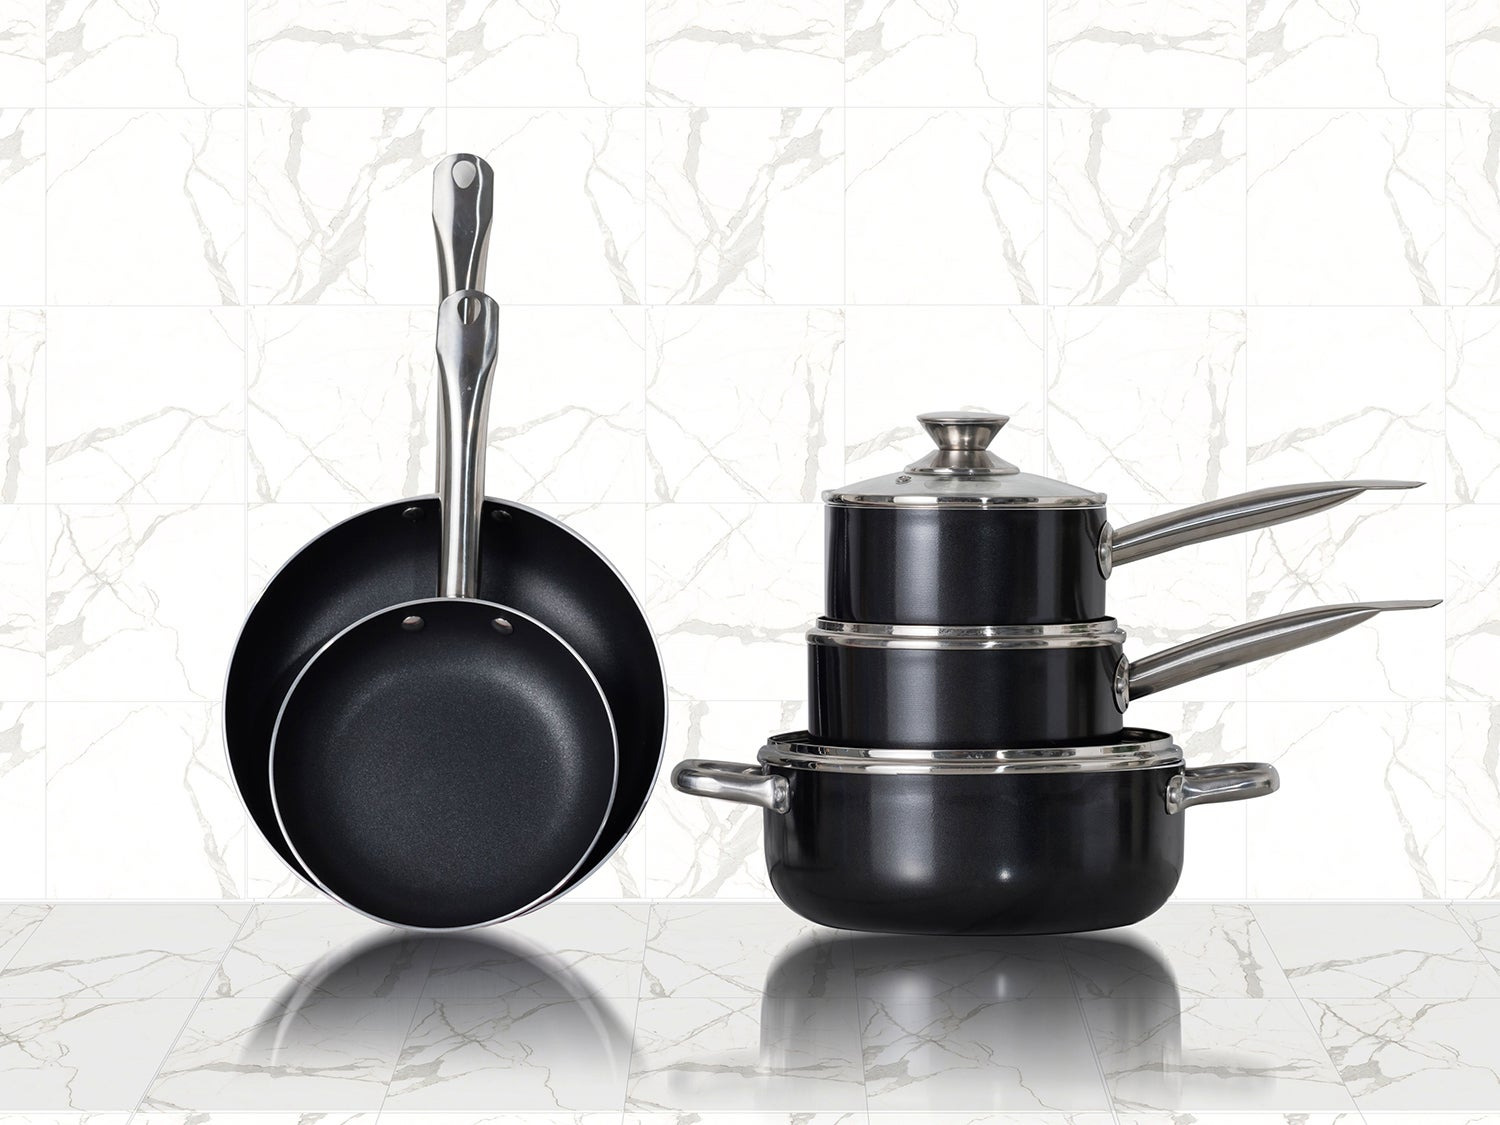 Pots and pans on a counter